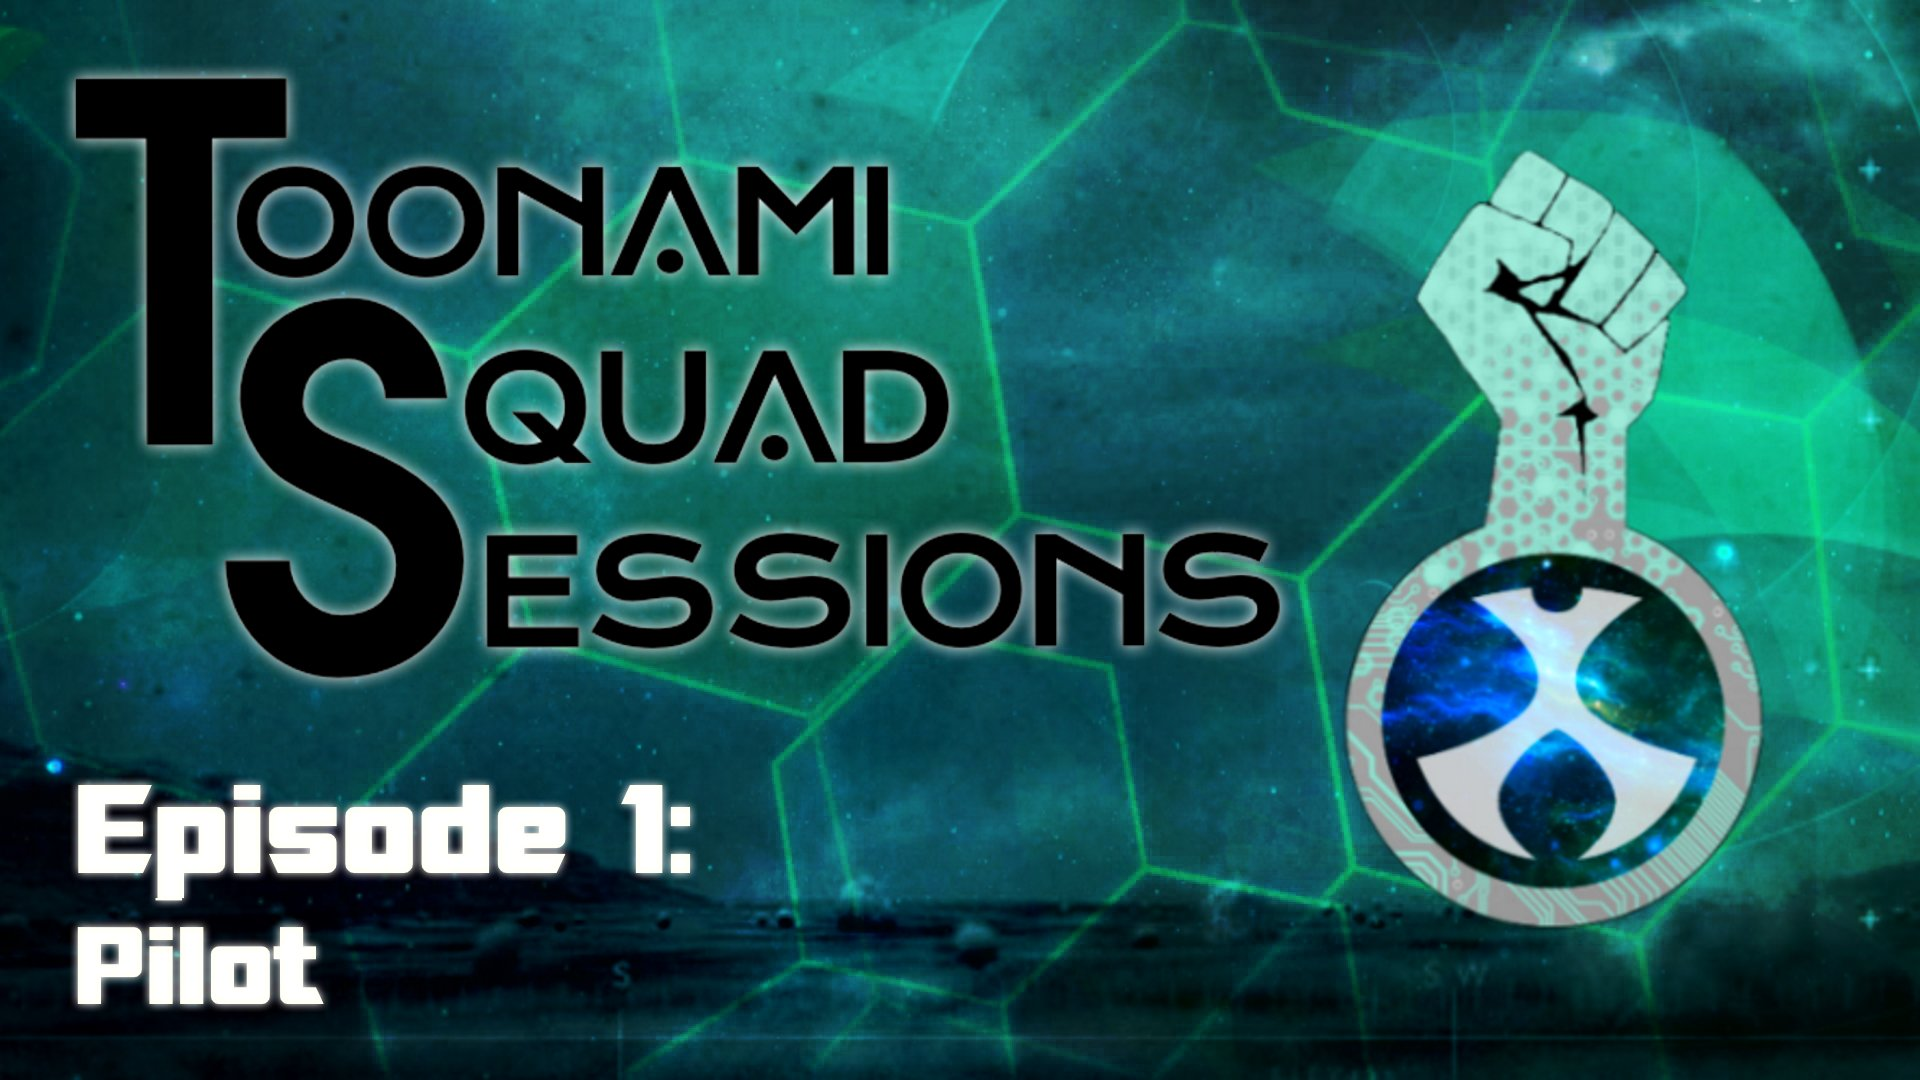 Toonami Squad Sessions Episode 1: Pilot